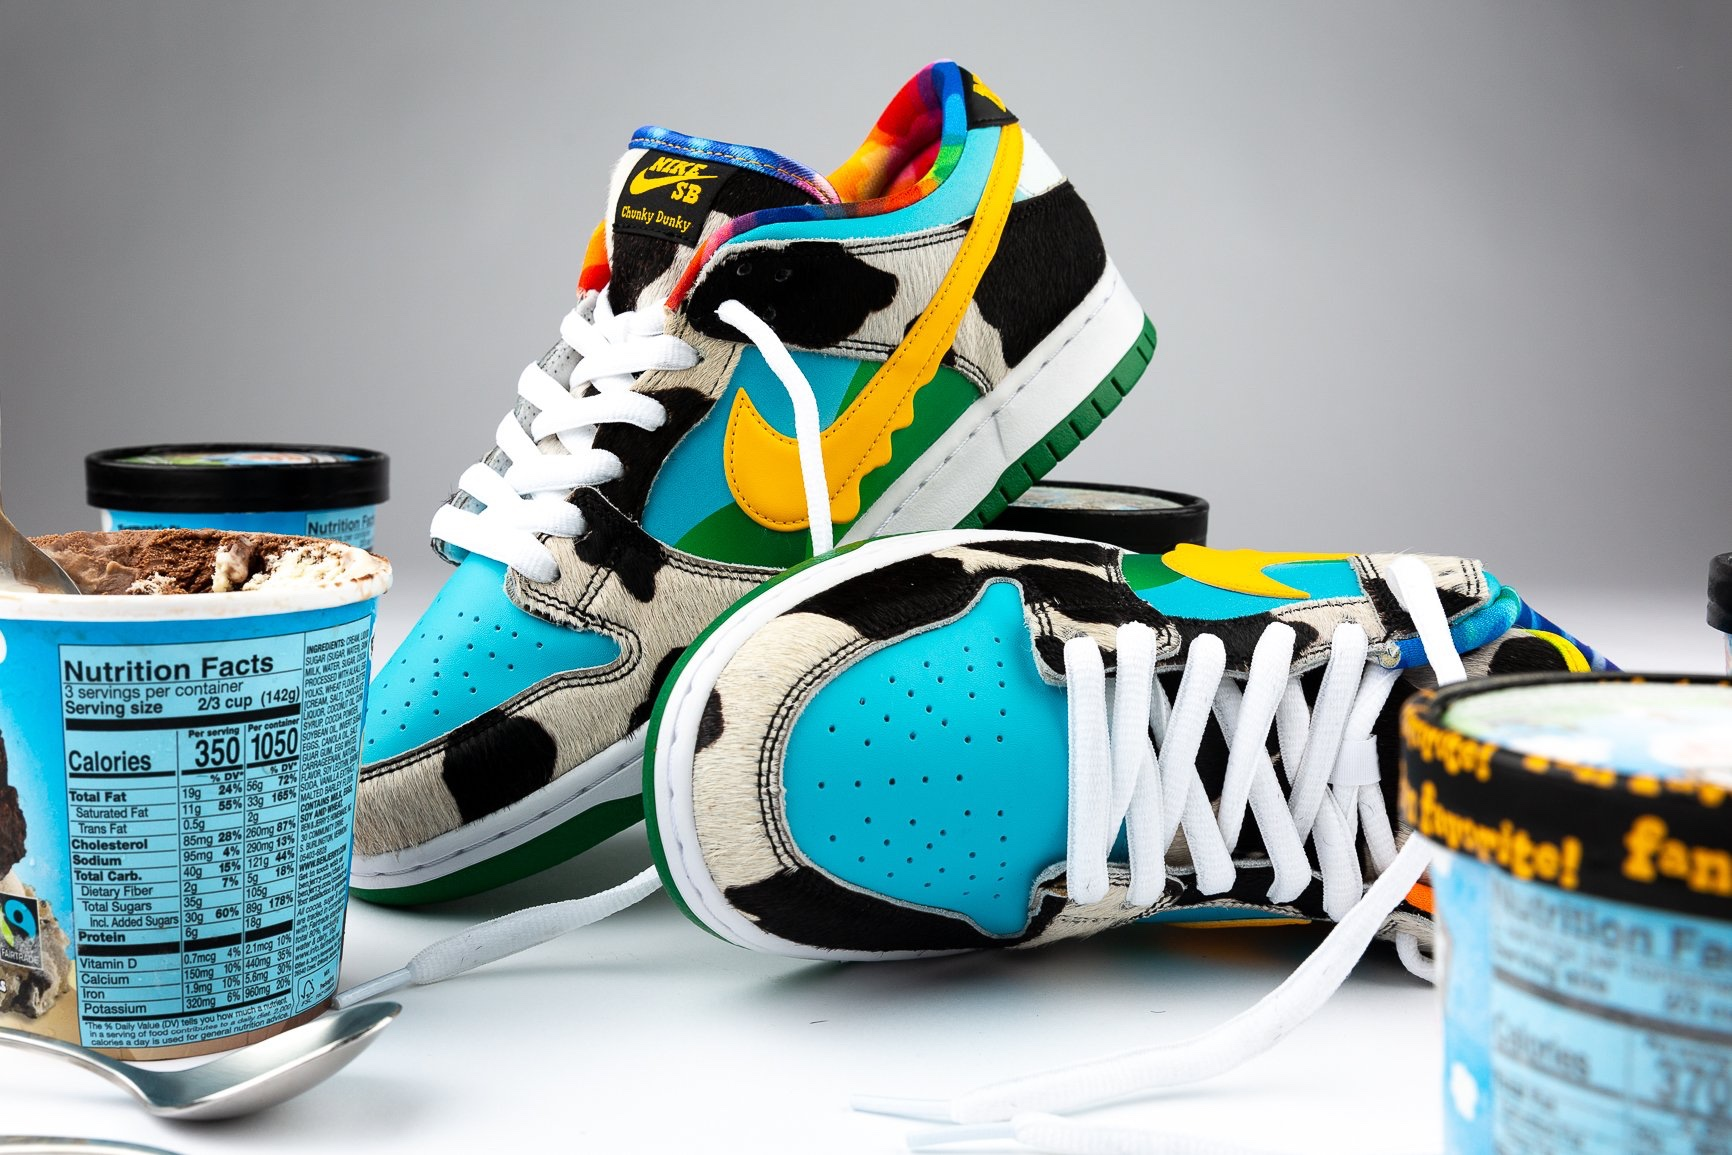 Ben & Jerry's x Nike Dunk Low